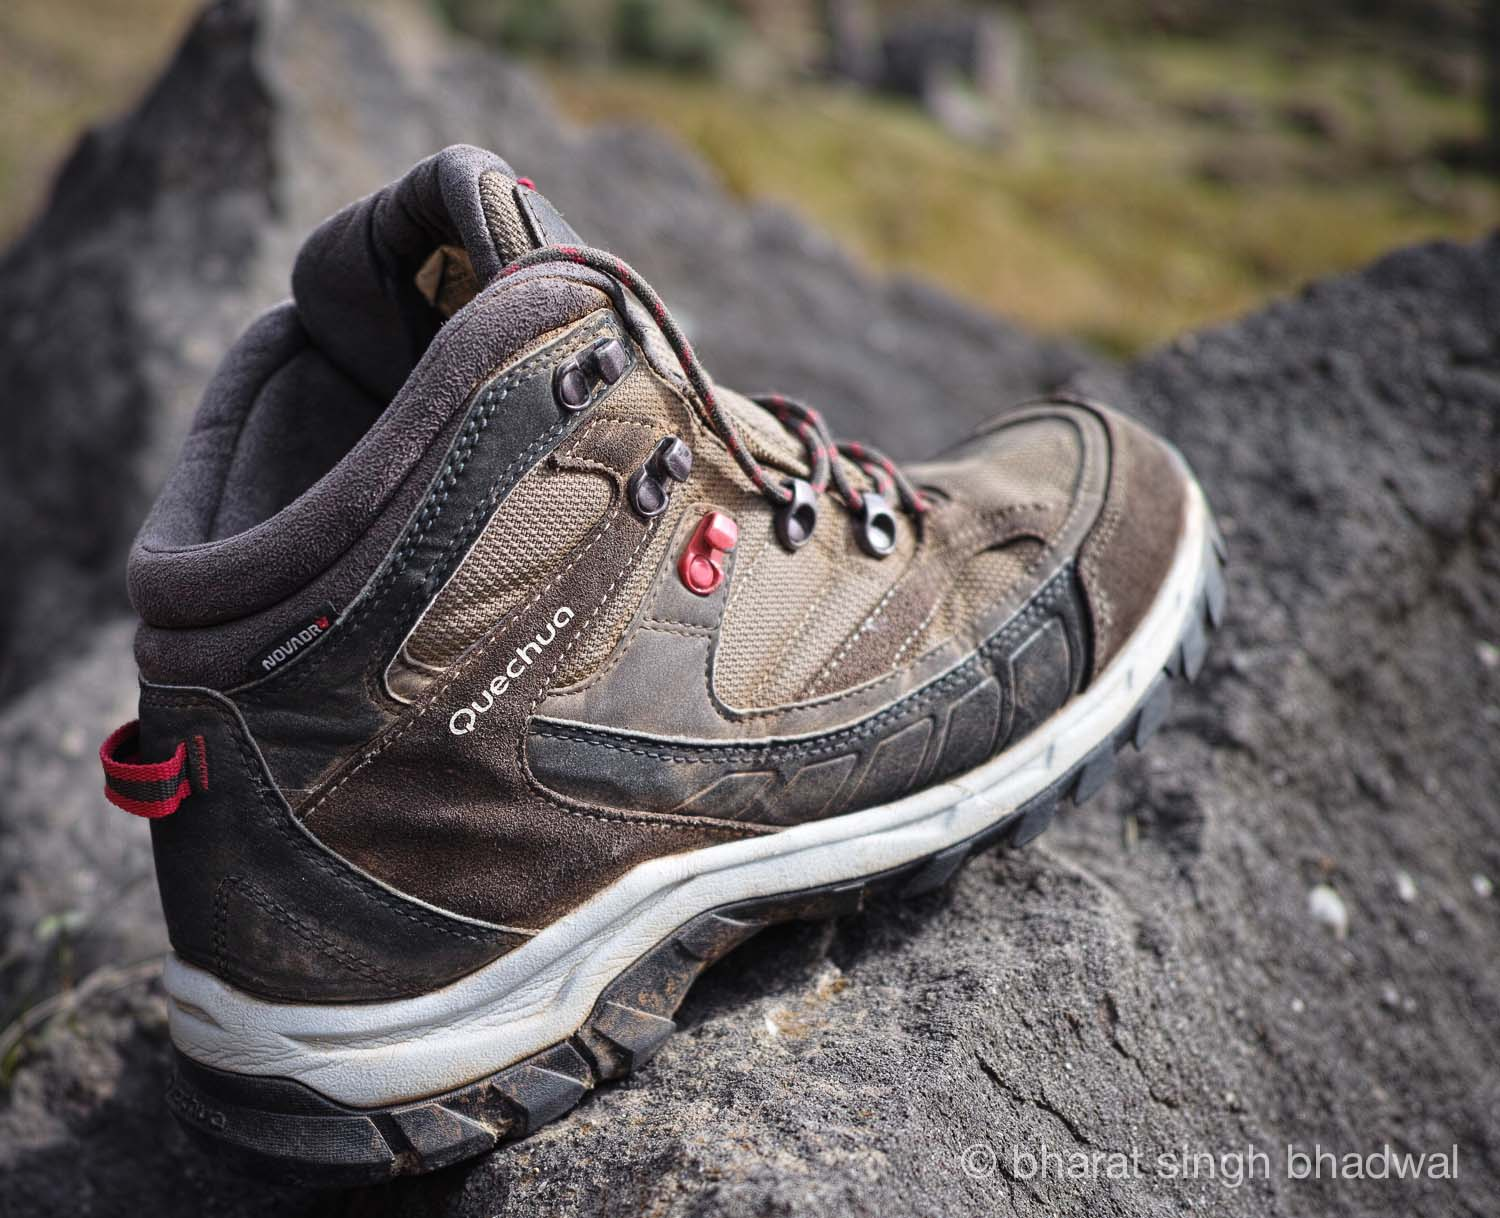 Quechua Forclaz 500 Wenge now renamed to Forclaz 100 High